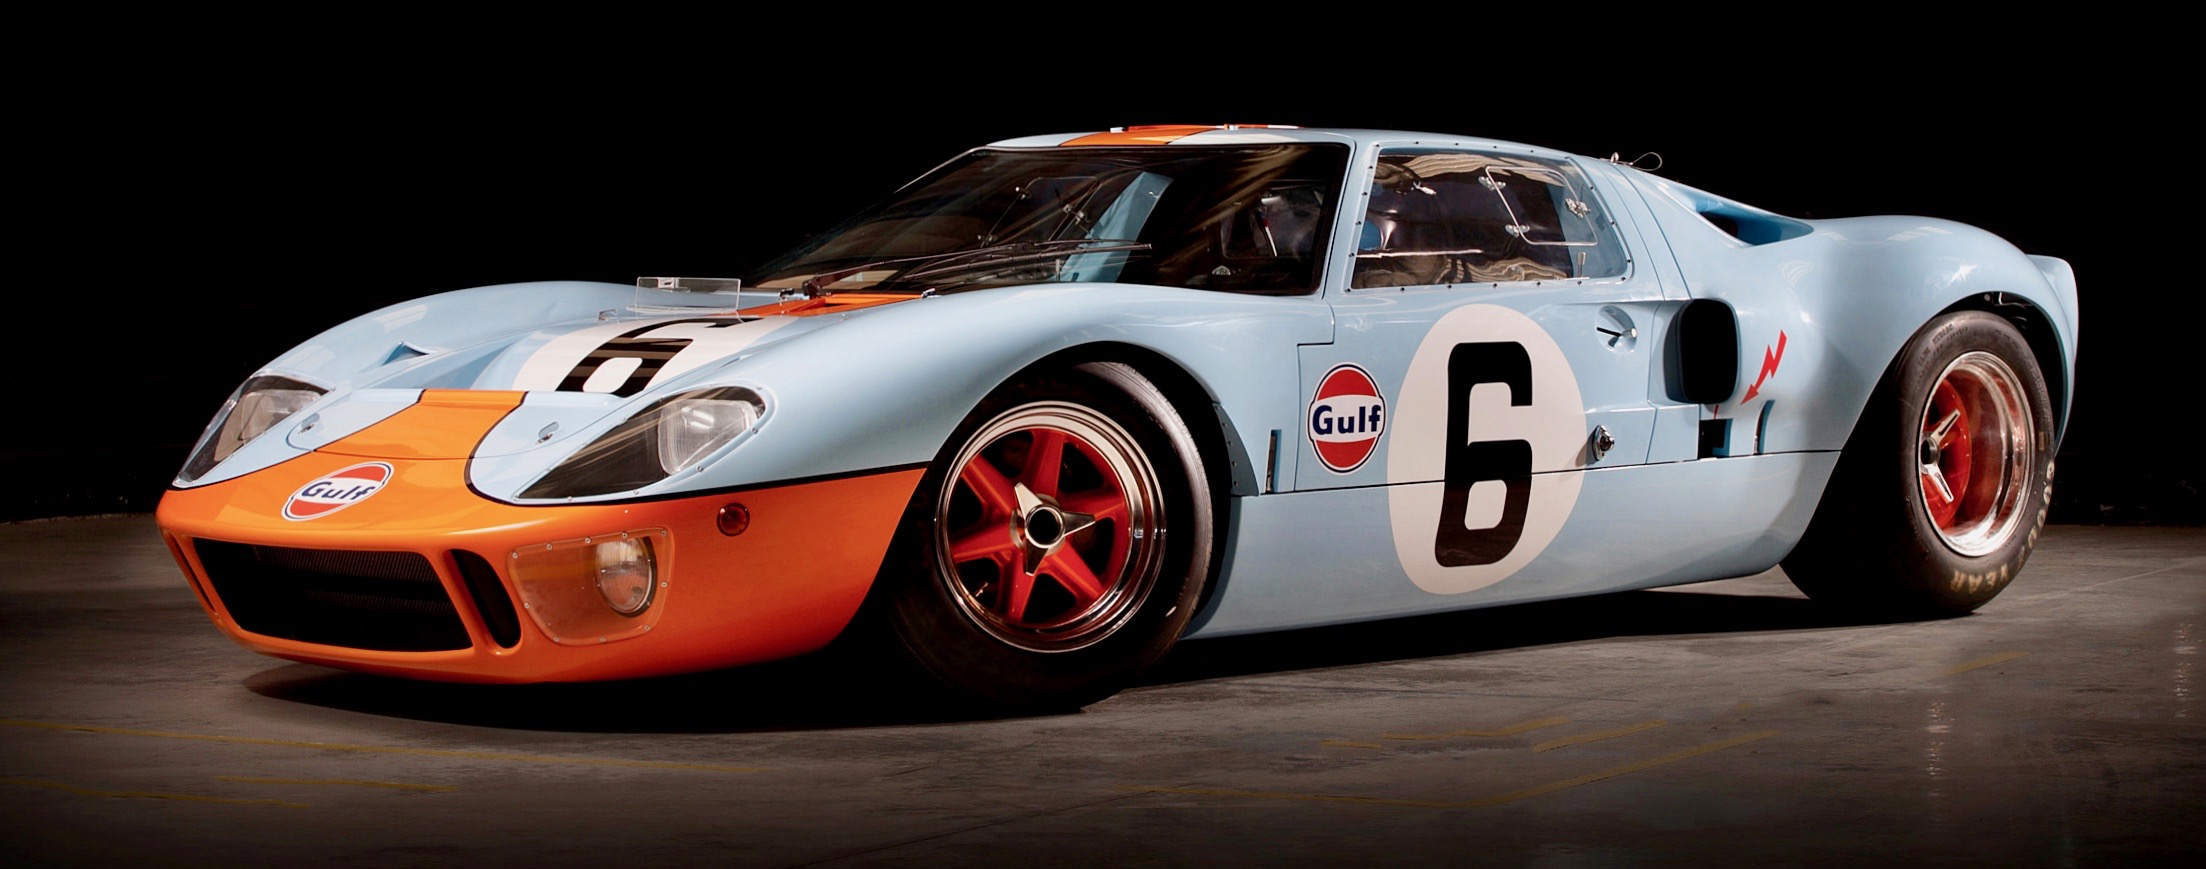 GT40, Plans announced for 50 copies of two-time Le Mans-winning GT40, ClassicCars.com Journal